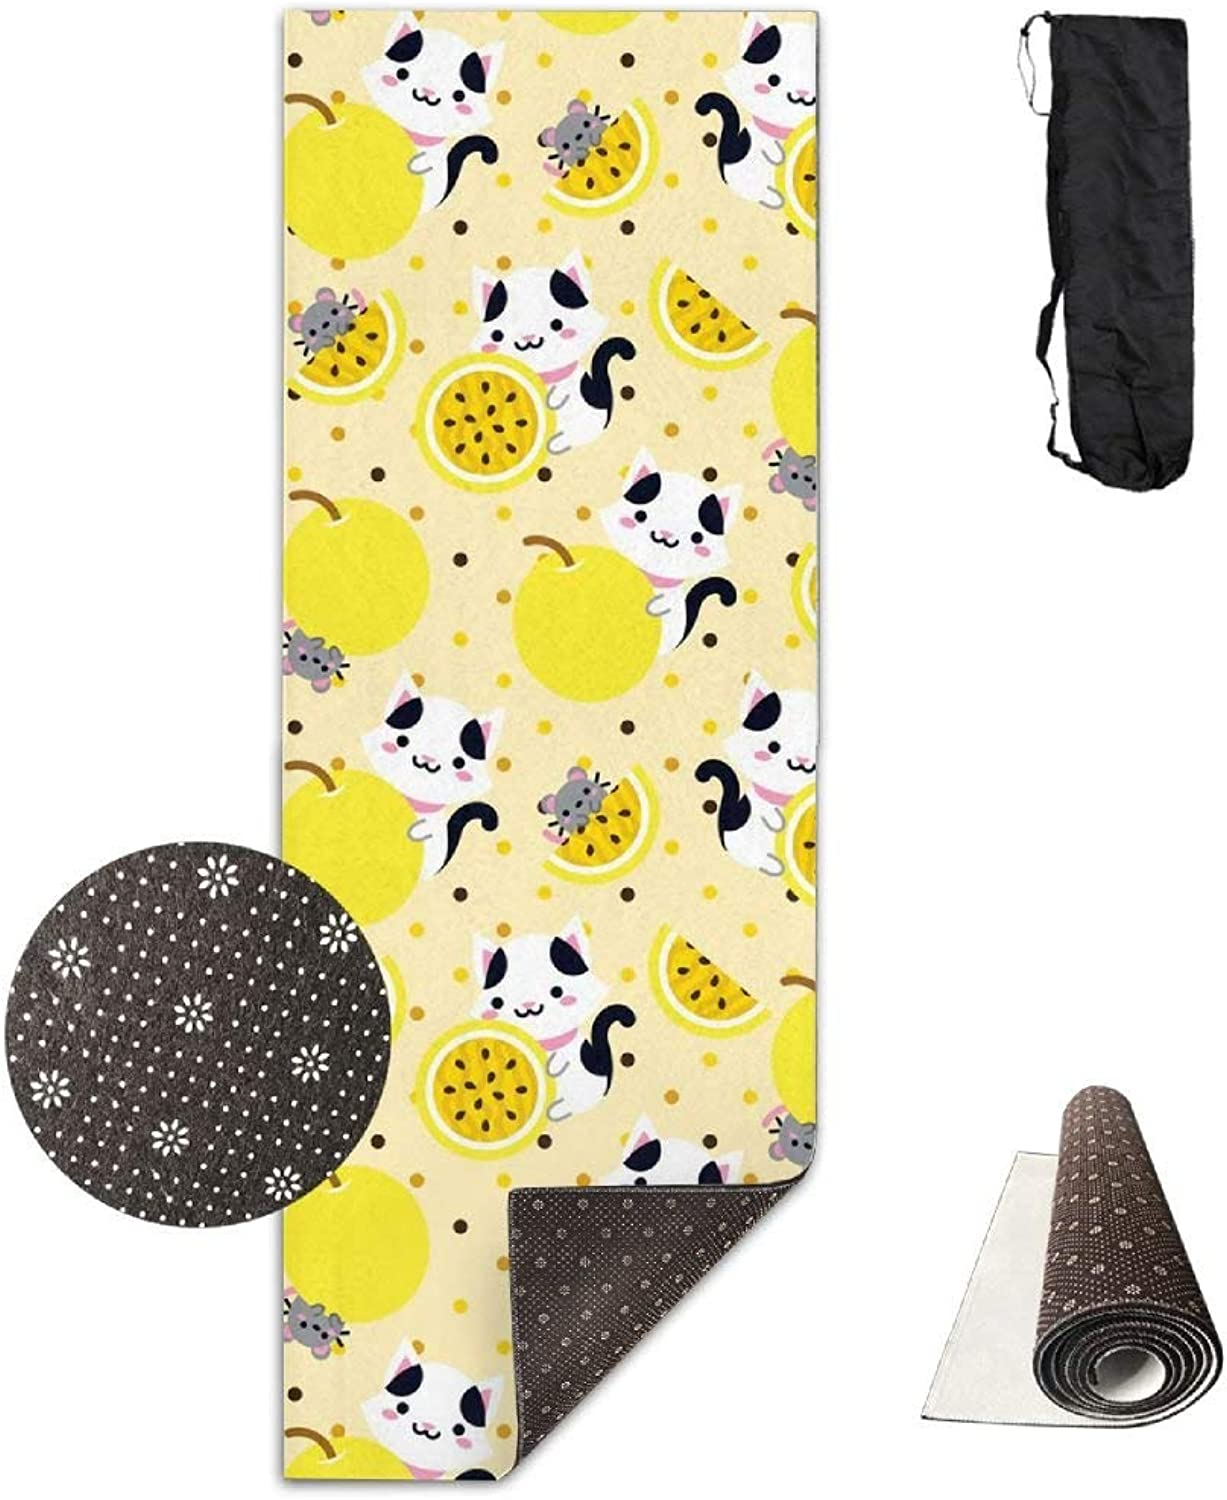 Non Slip Yoga Mat,Passion Fruit Cat and Mouse 3D Print 71X24 Inch Velvet with Carrying Strap